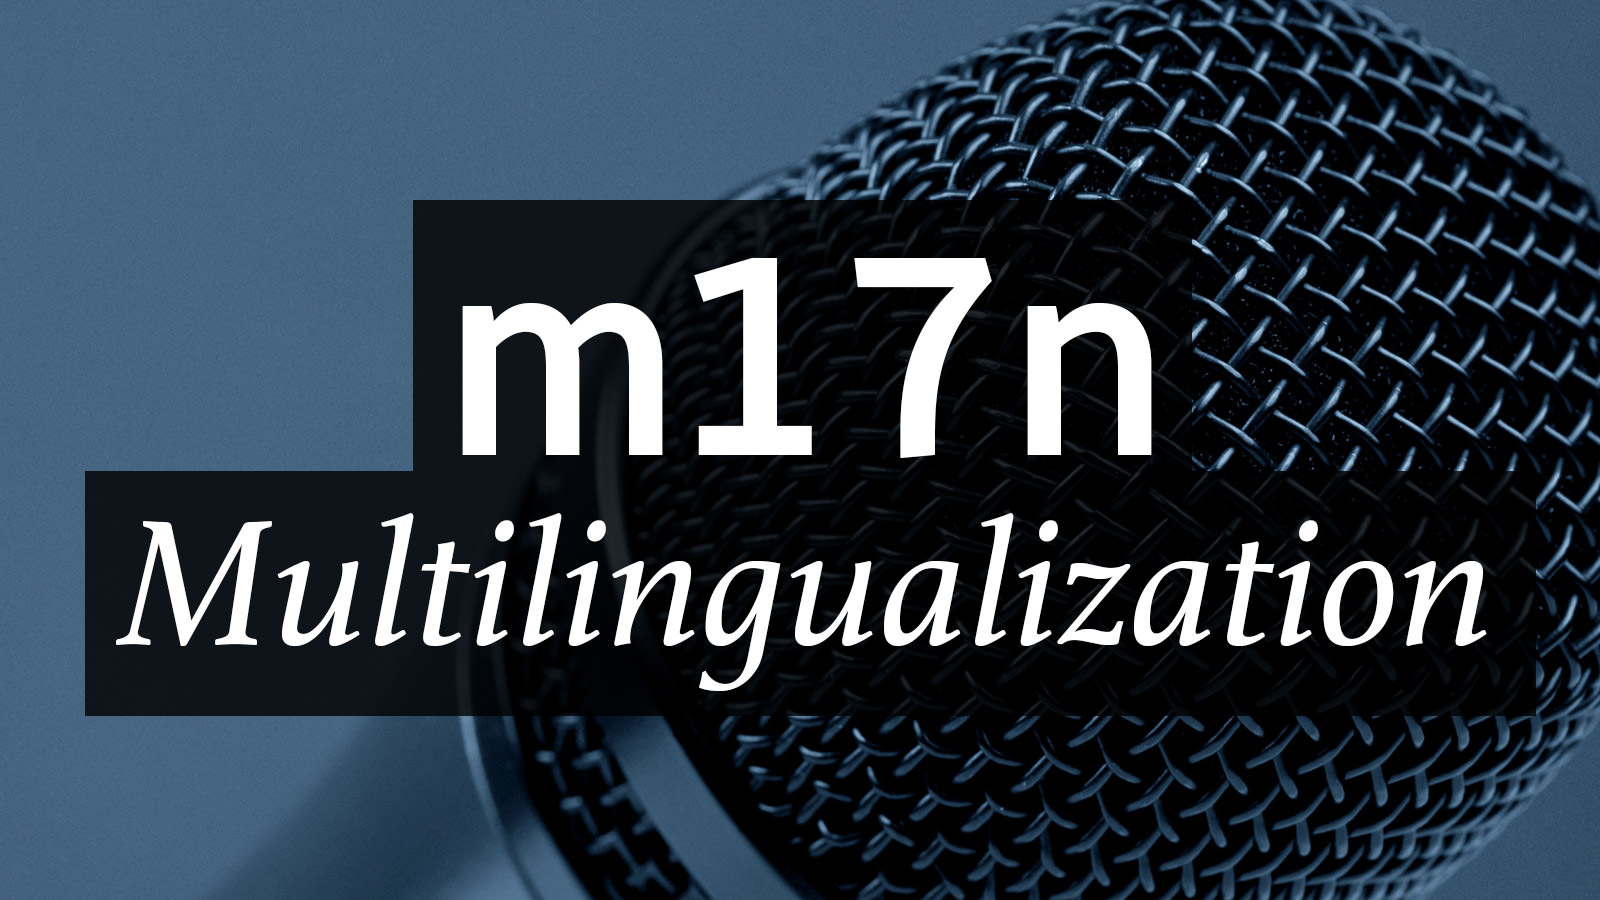 Multilingualization